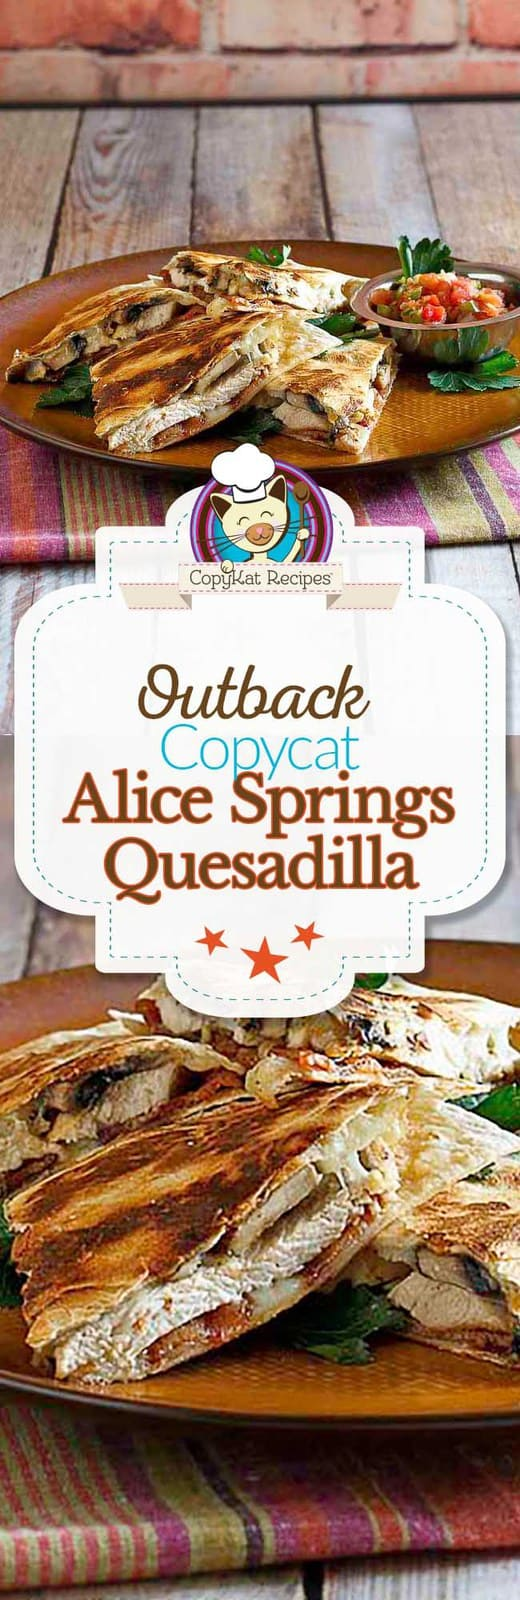 You can recreate the Alice Springs Chicken Quesadilla at home with this easy copycat recipe.